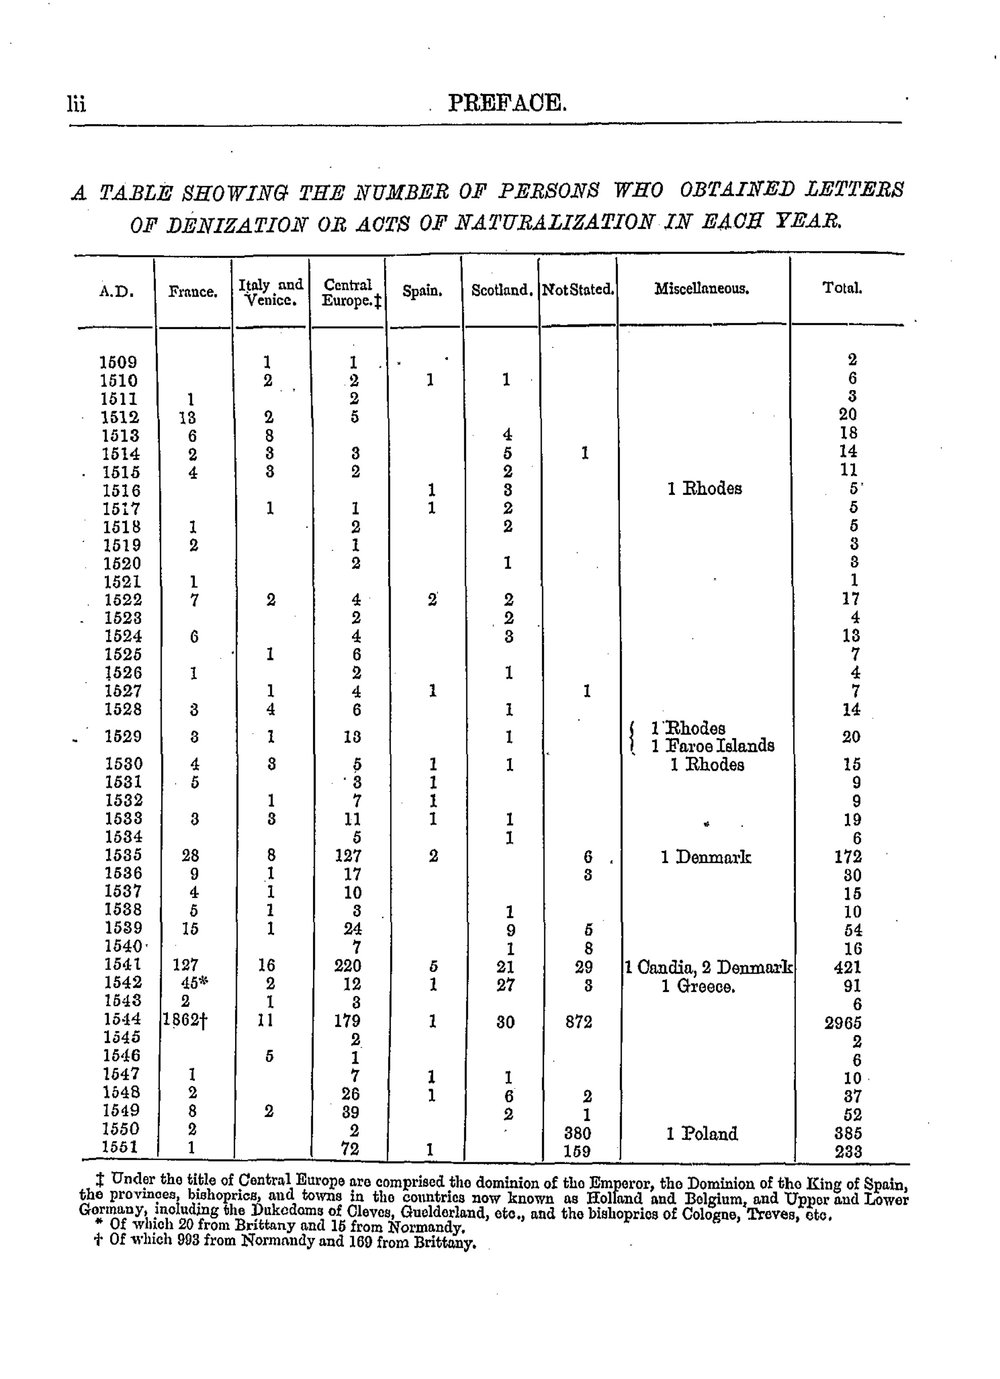 - As early as the reign of Edward III (1327-1377) a distinction was made between 'natural born' and 'alien' residents in England, with the latter paying higher subsidies. Through letters of denization and acts of naturalization foreign-born people could obtain the same or similar rights as those born in England. This document lists the names of people who received letters of denization and acts of naturalization between 1509 and 1603 and the reasons for being given them.These pages are from William Page, Letters of Denization and Acts of Naturalization for Aliens in England, 1509-1603, Huguenot Society Quarto Series, volume 8, page lii© The Huguenot Society of Great Britain and Ireland